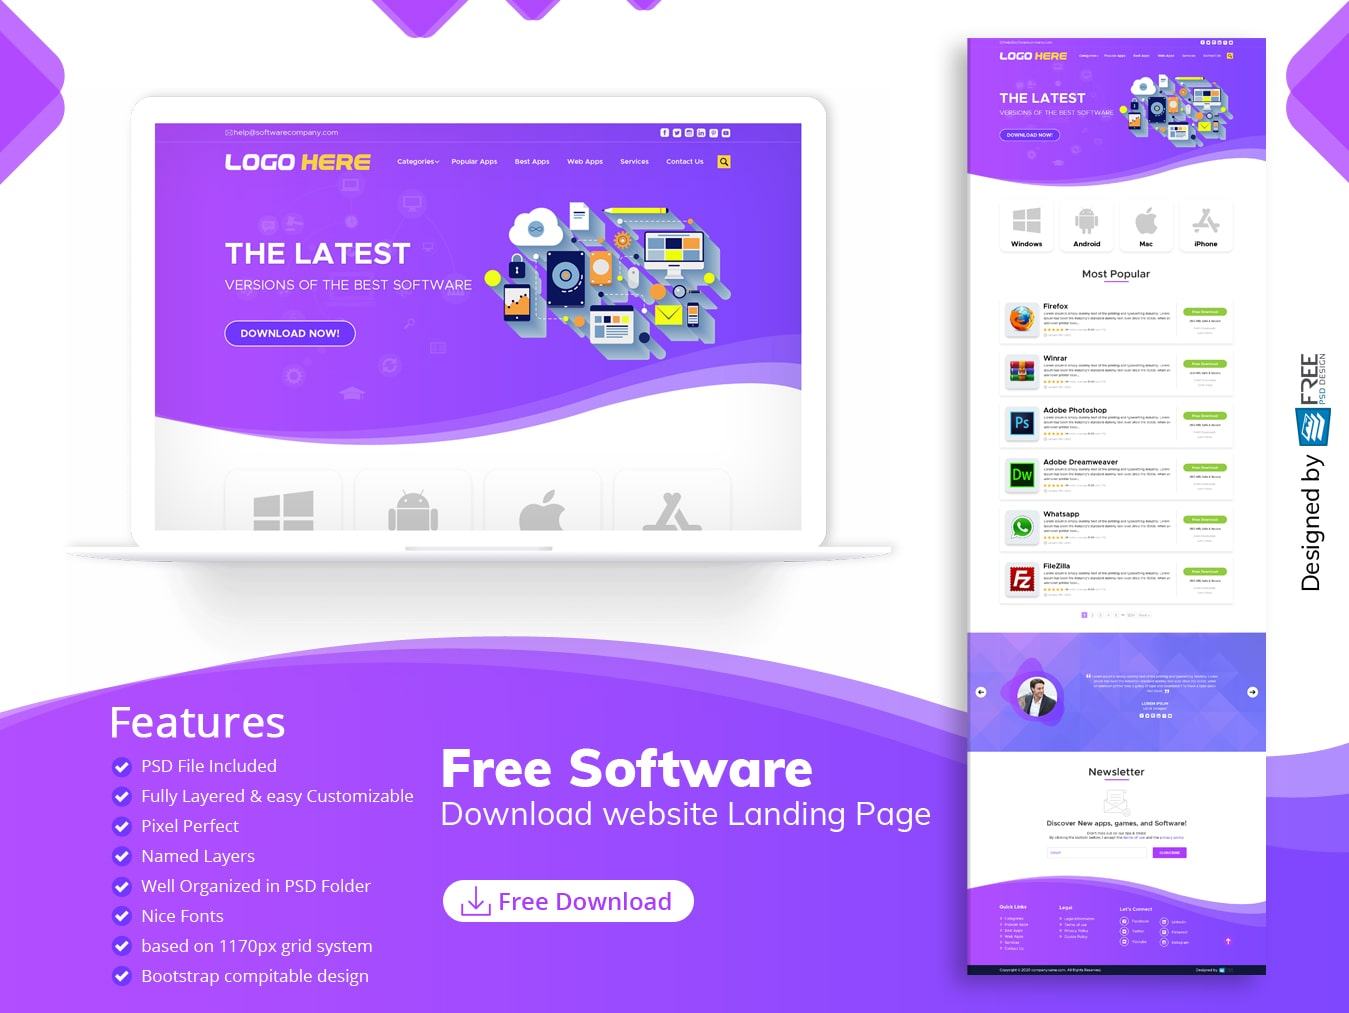 Free Software download website Landing Page